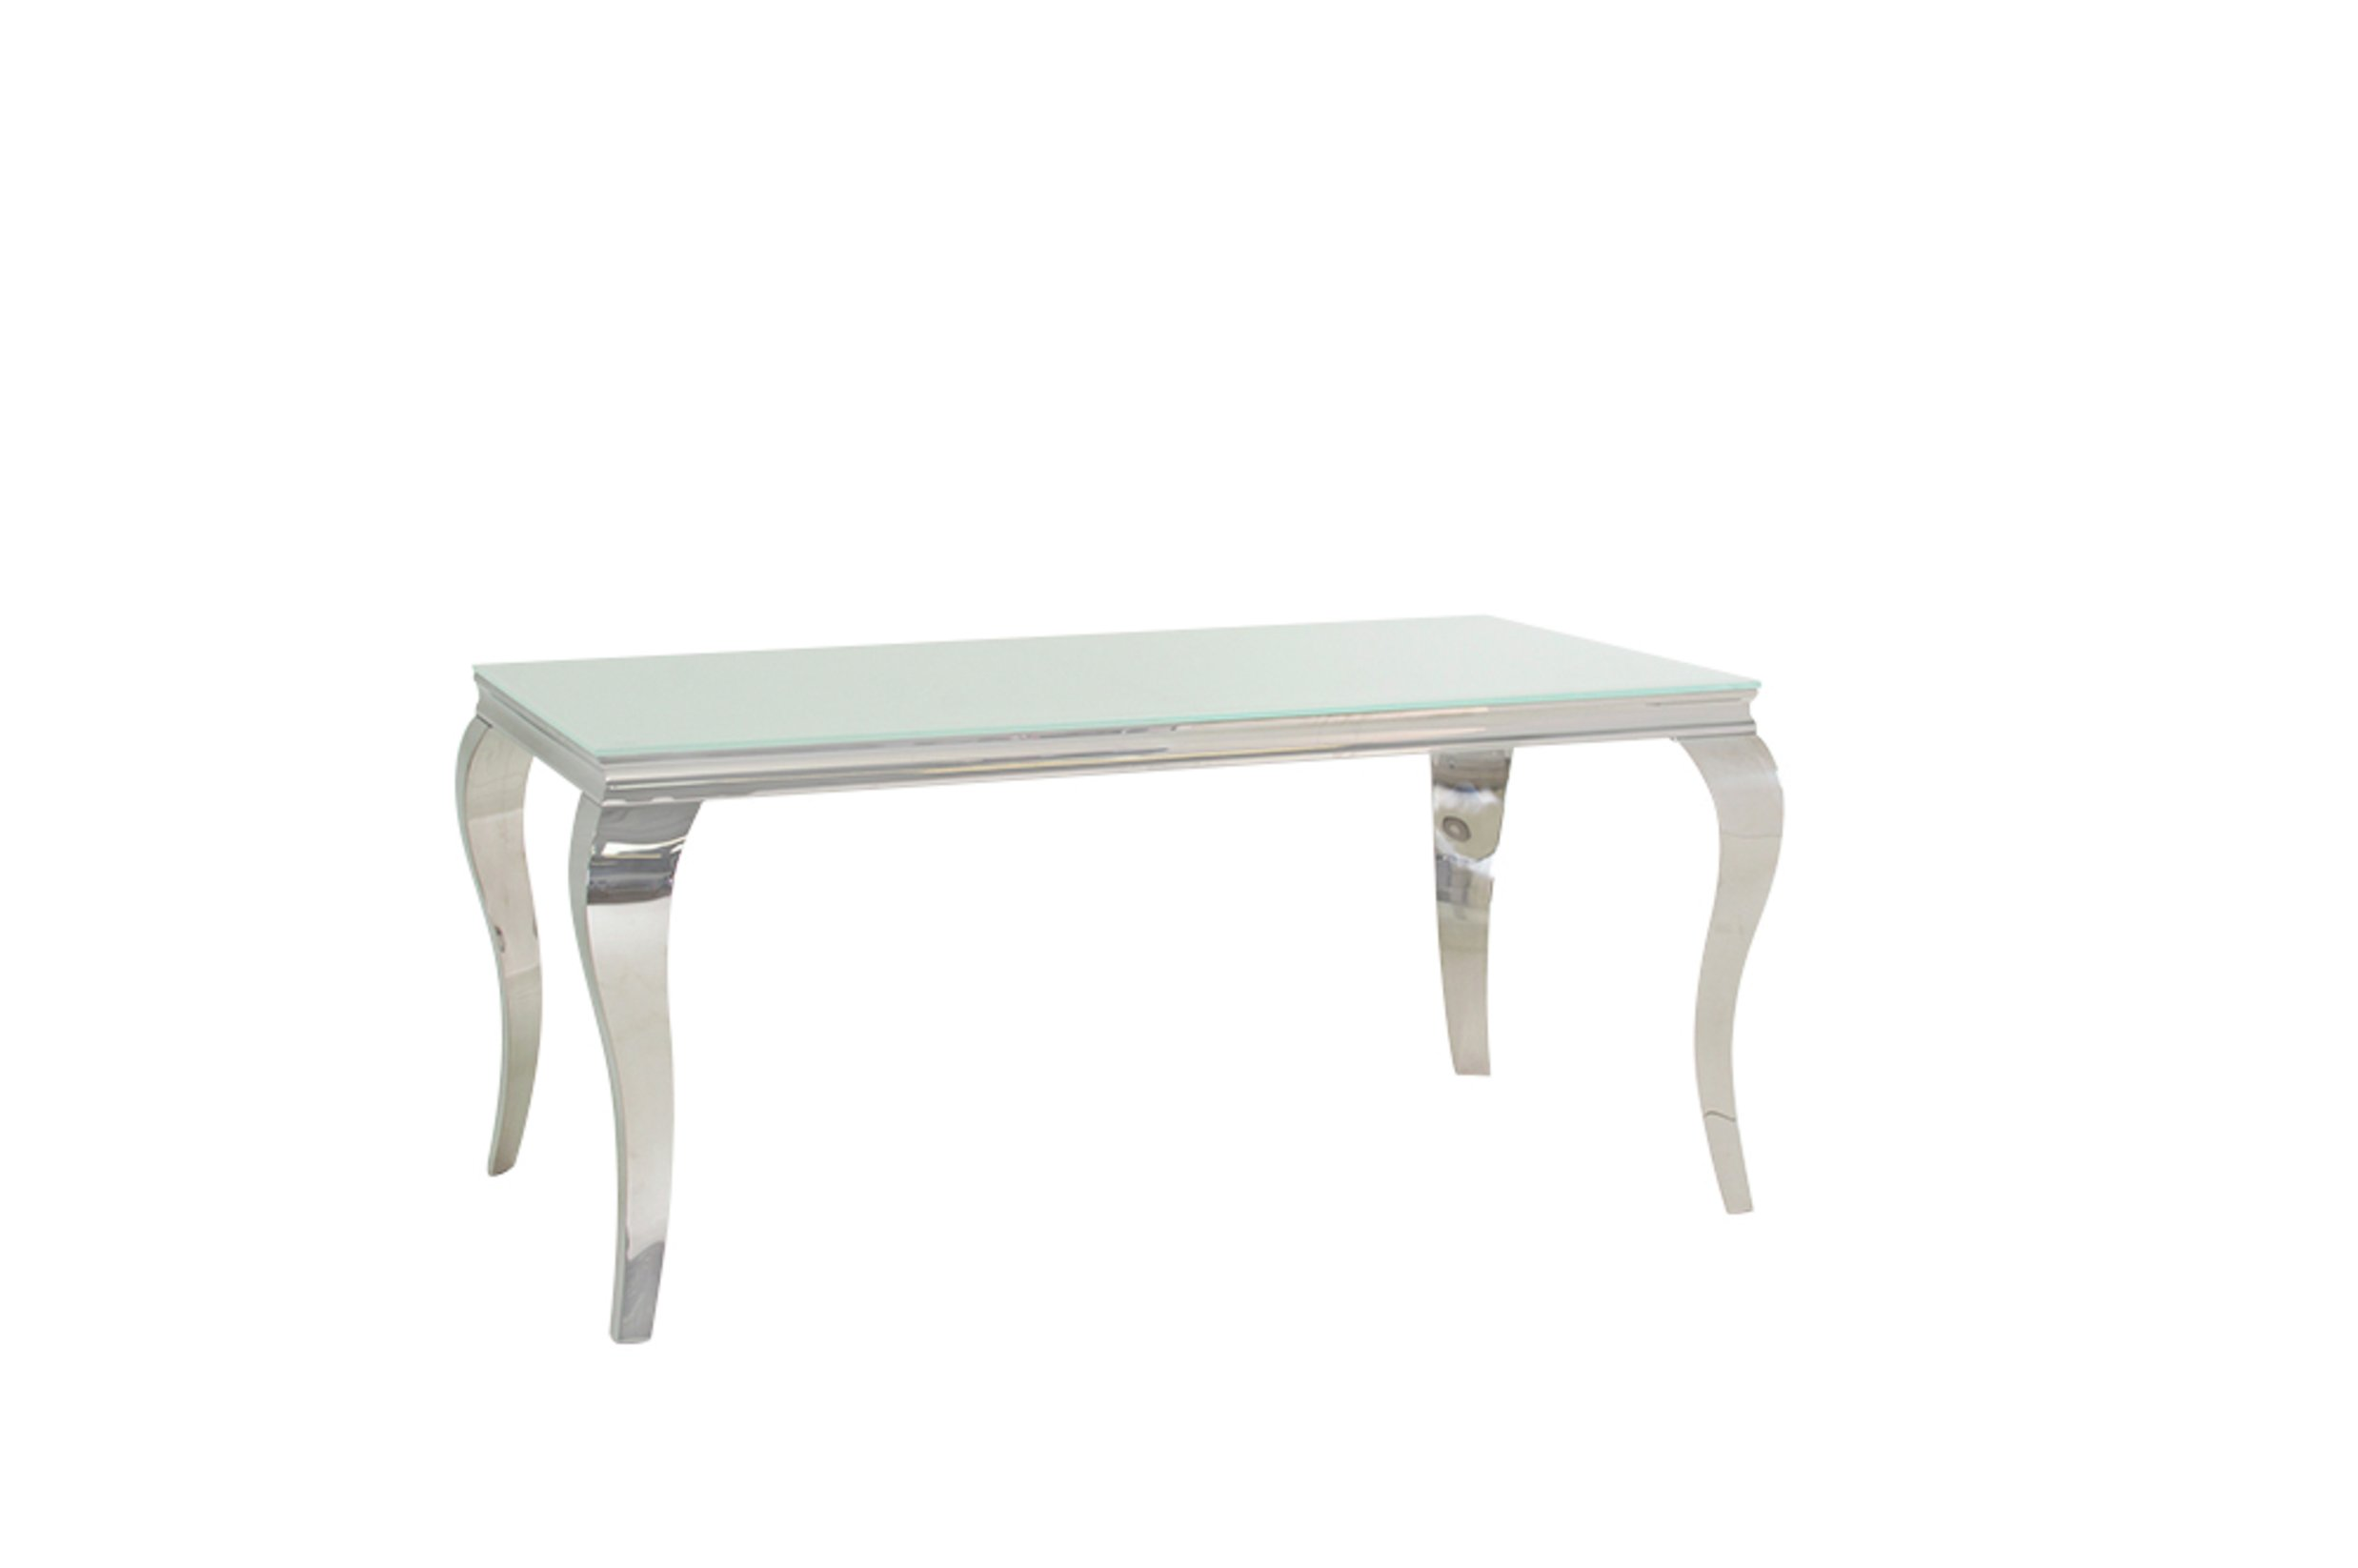 Image of Furnoko Louis Glass 4 Seater Table - White